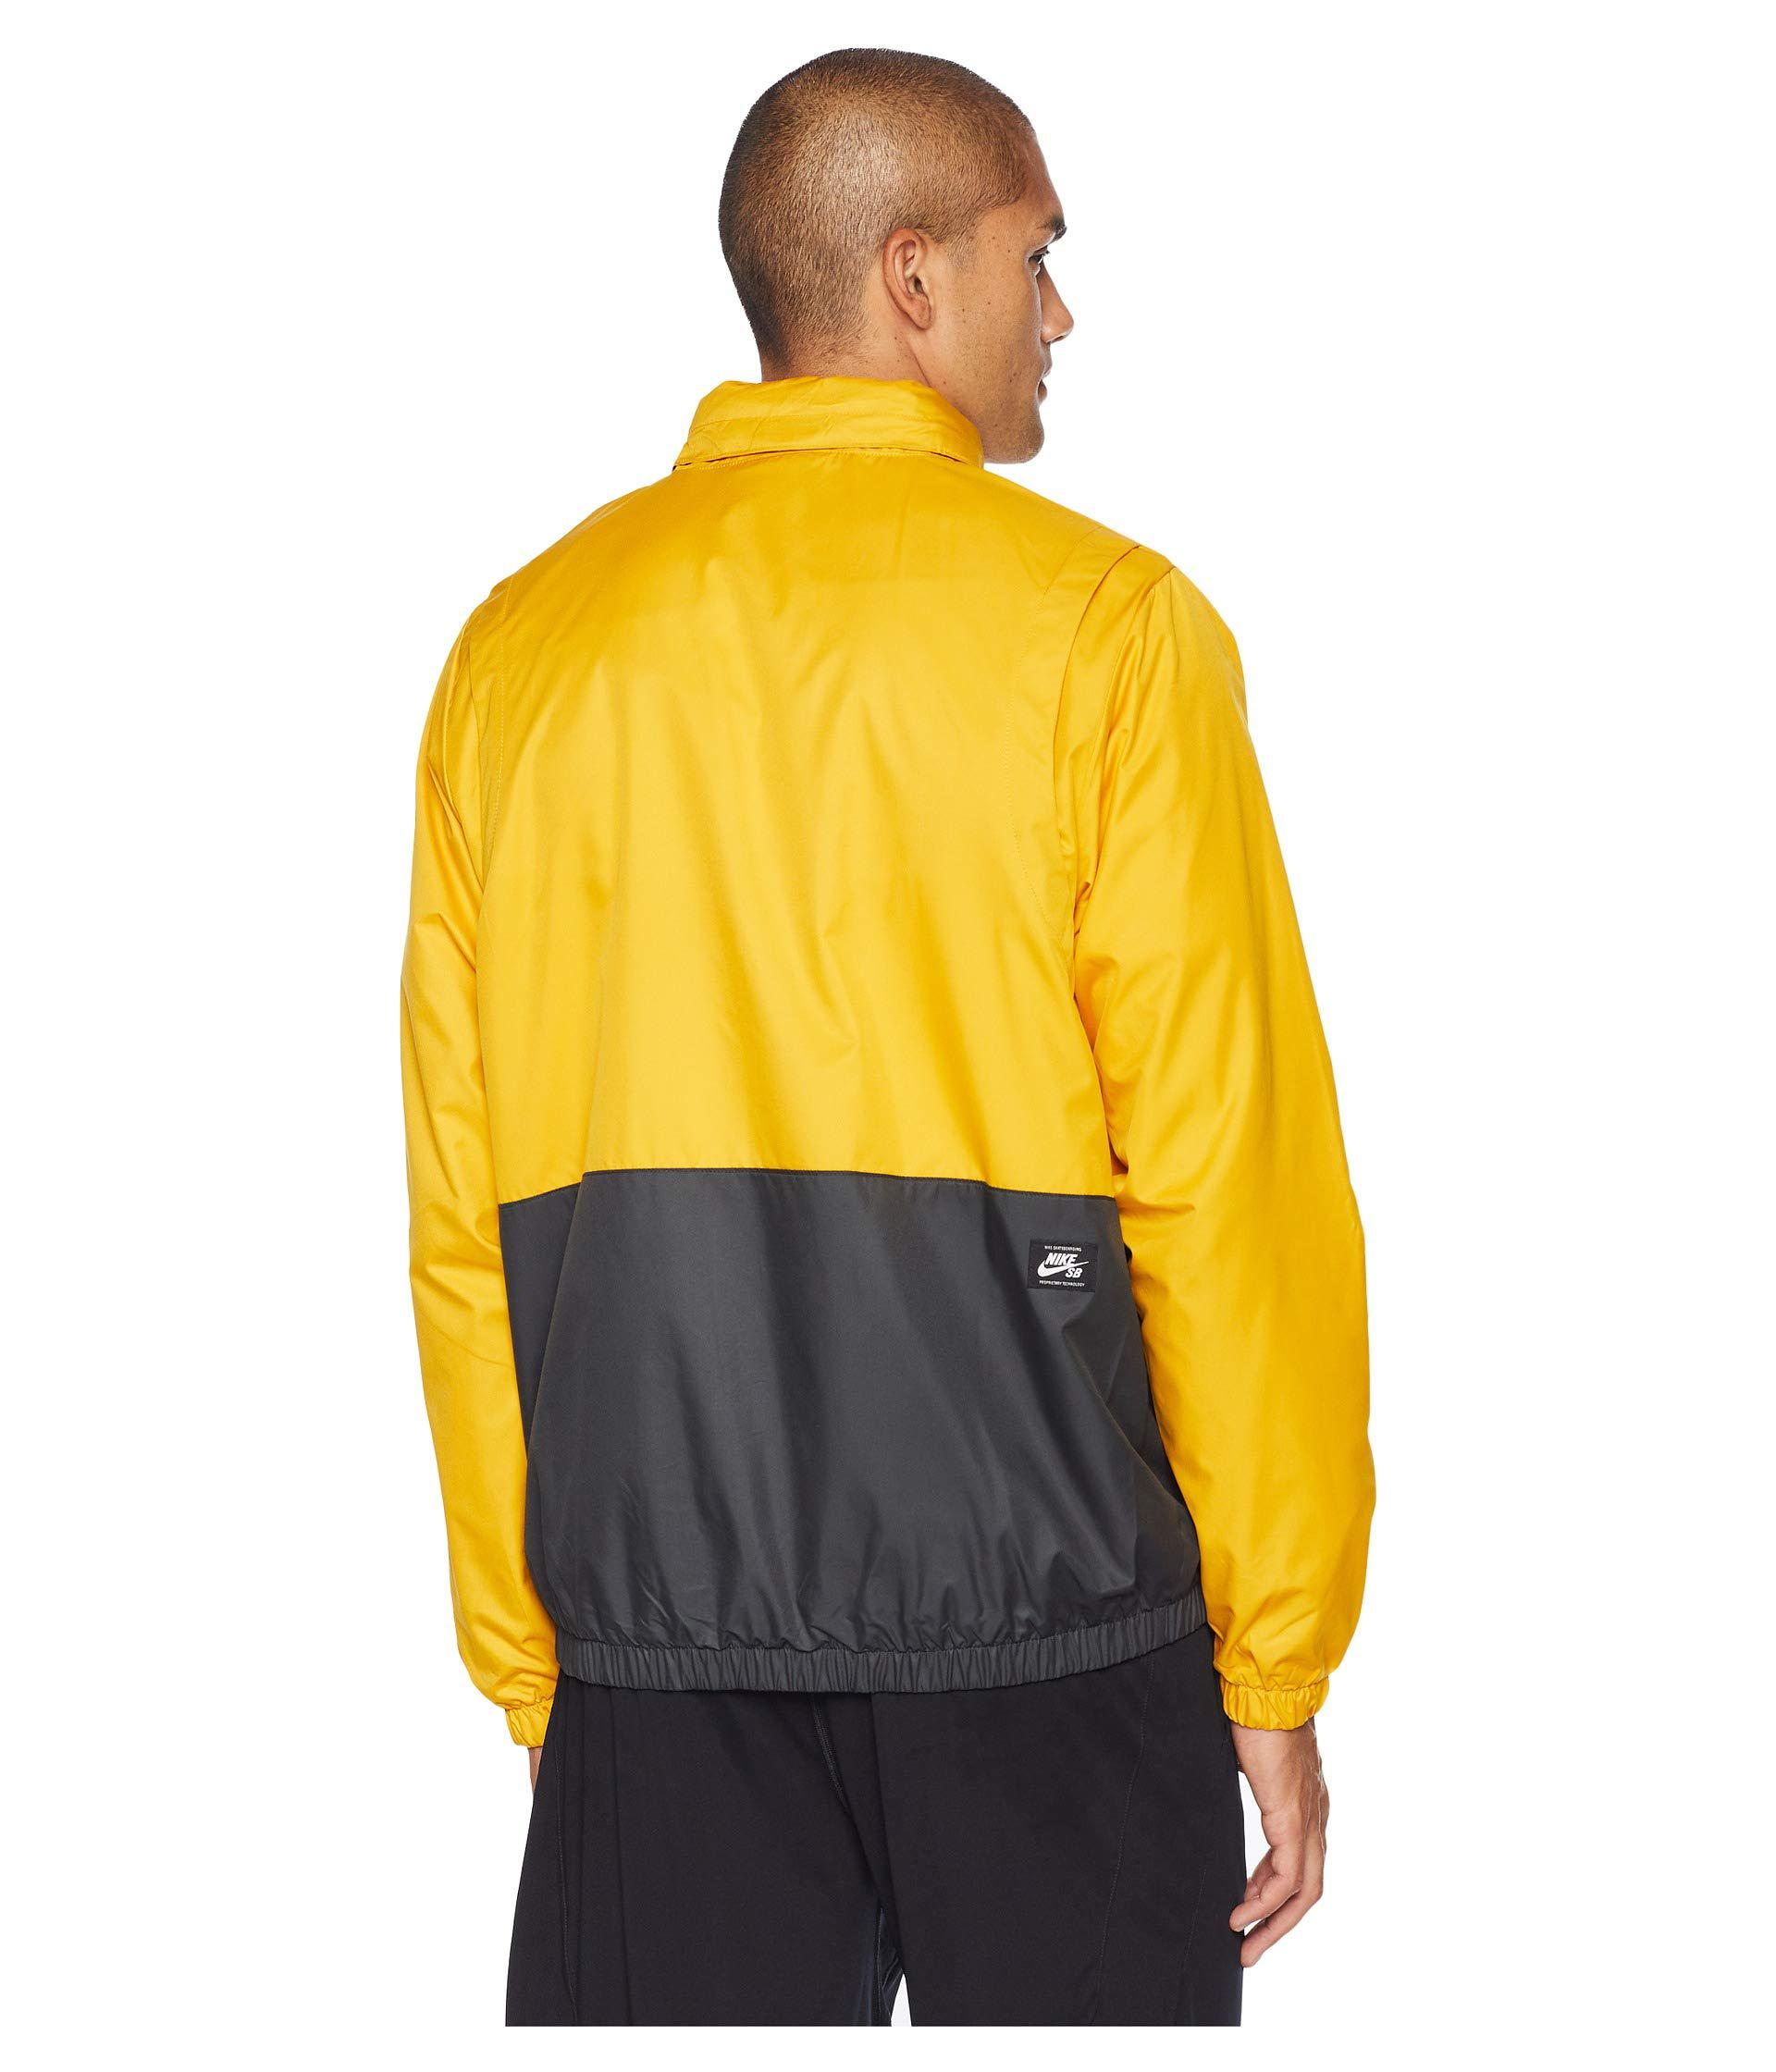 Nike - Yellow Sb Dry Hooded Stripe Jacket for Men - Lyst. View fullscreen be7f1bd80